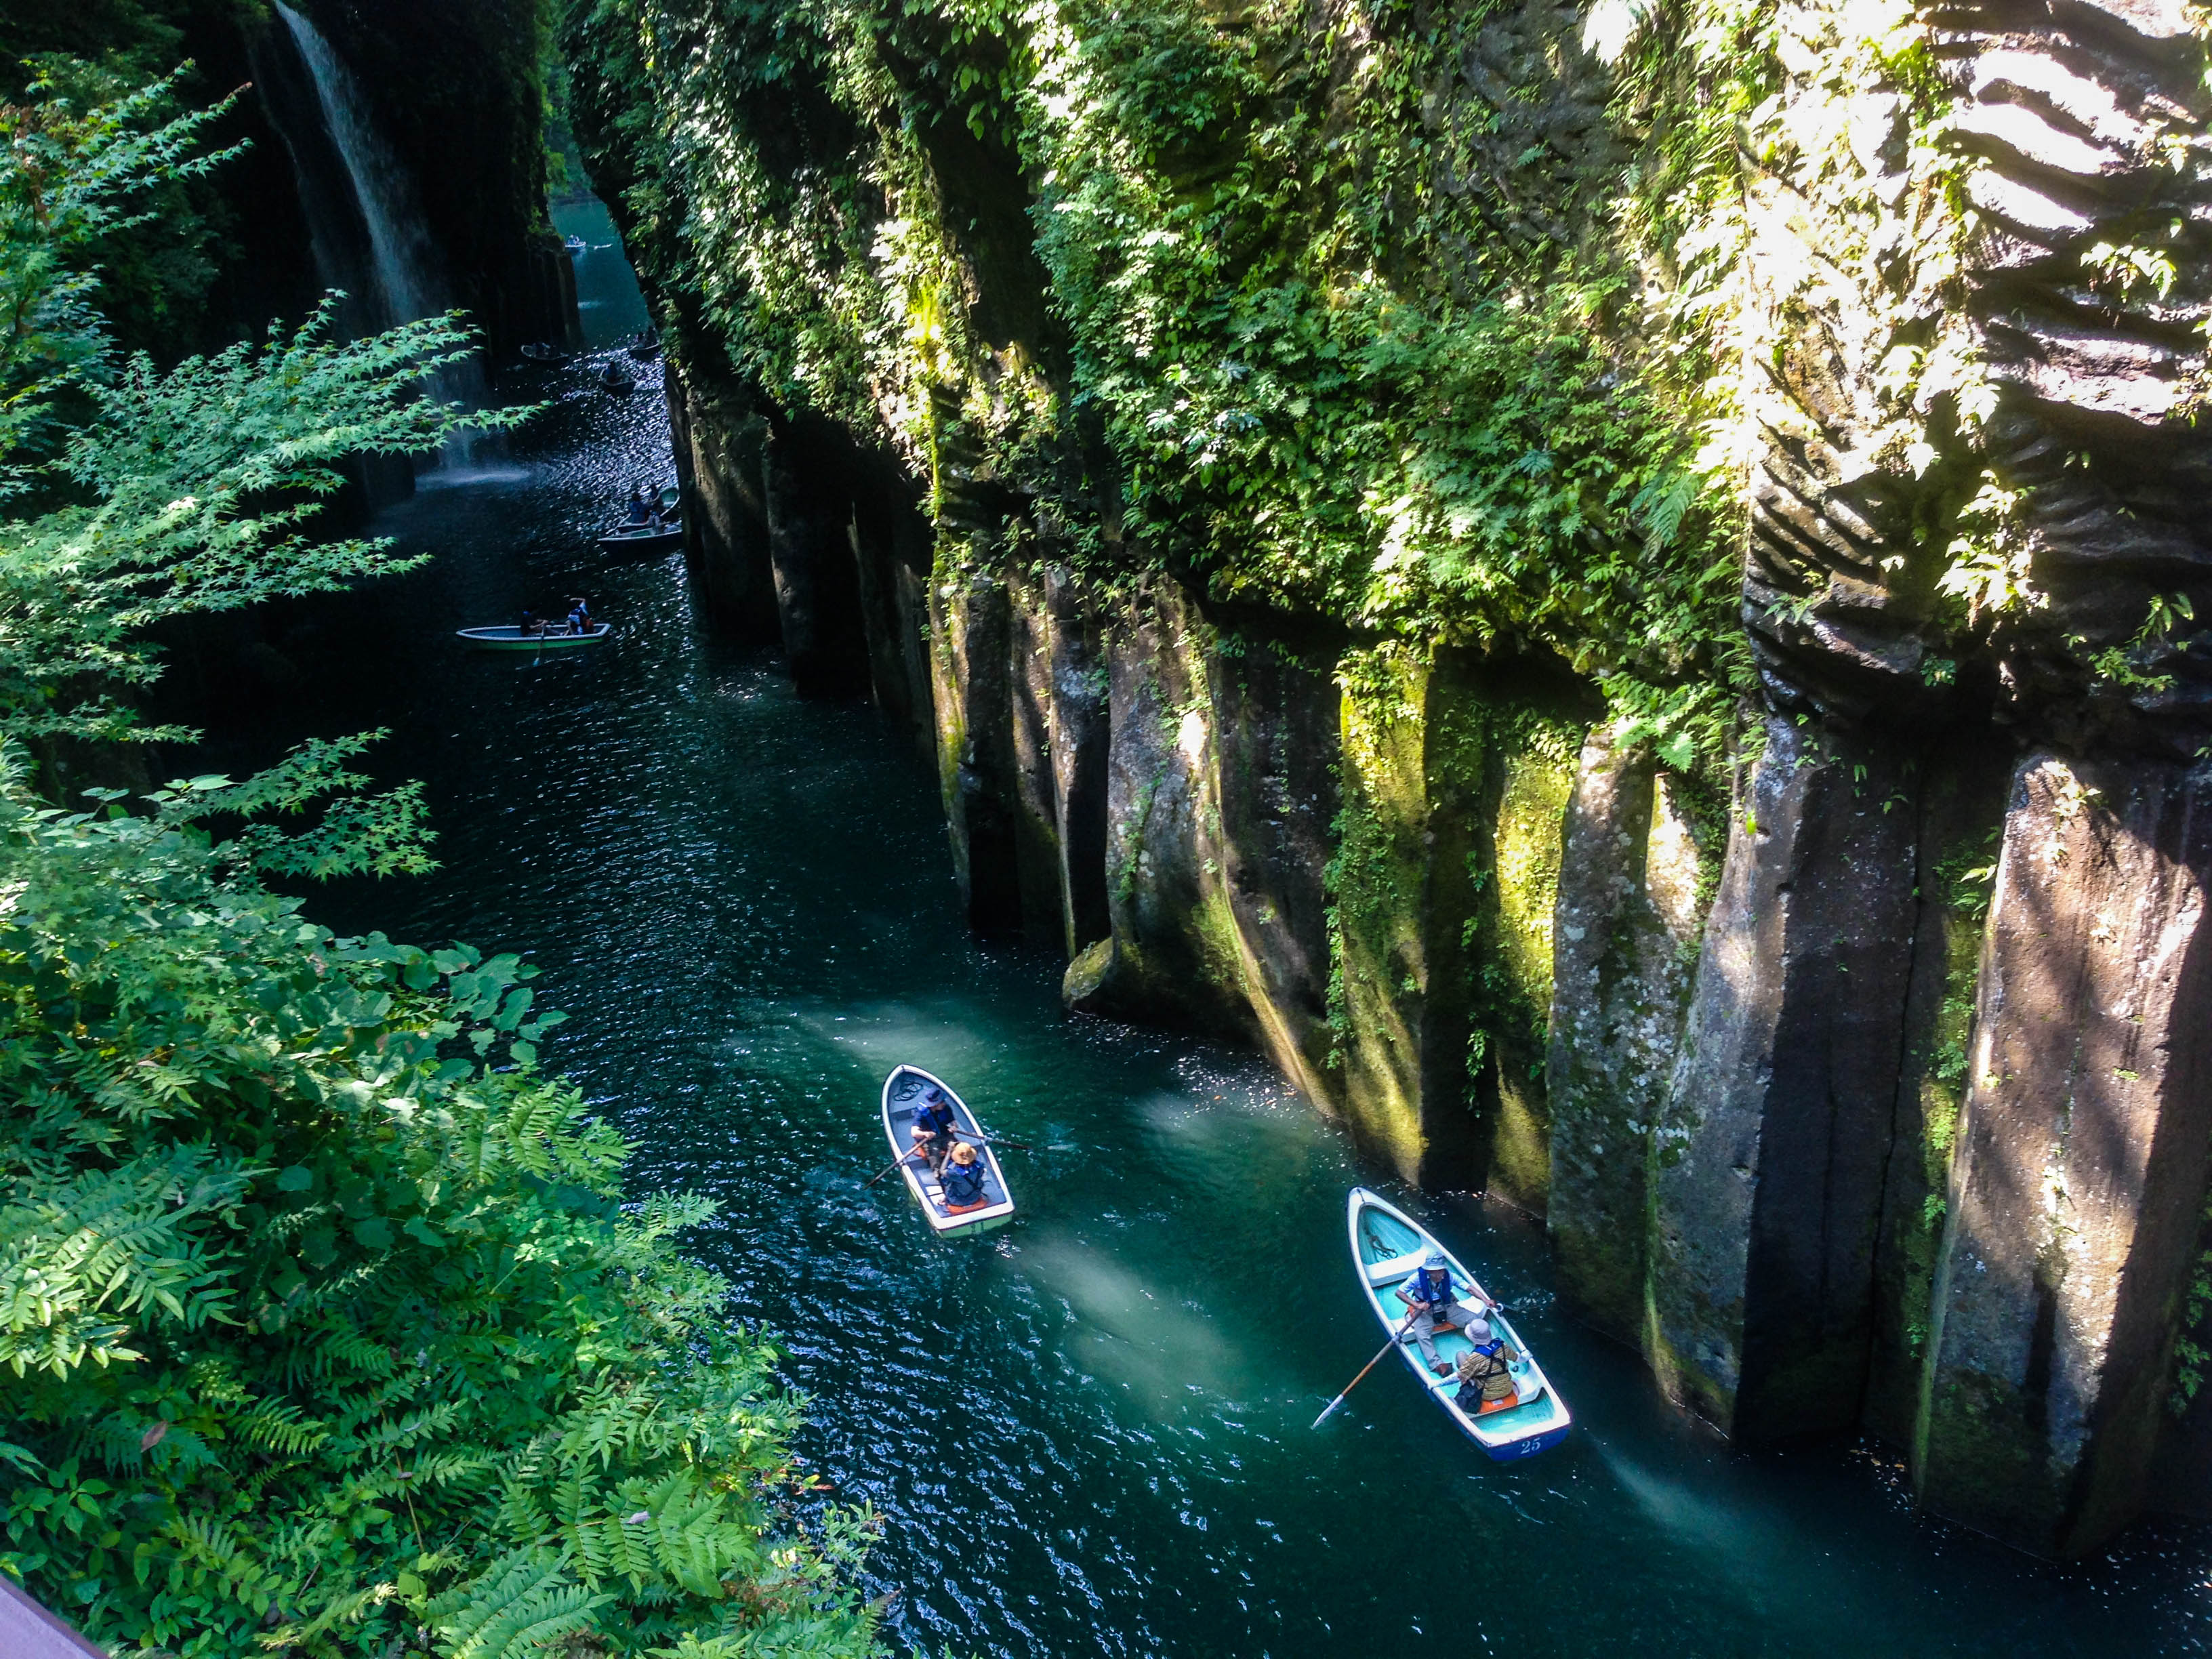 14 Travel Hotspots To Add to Your 2020 List - Ecophiles